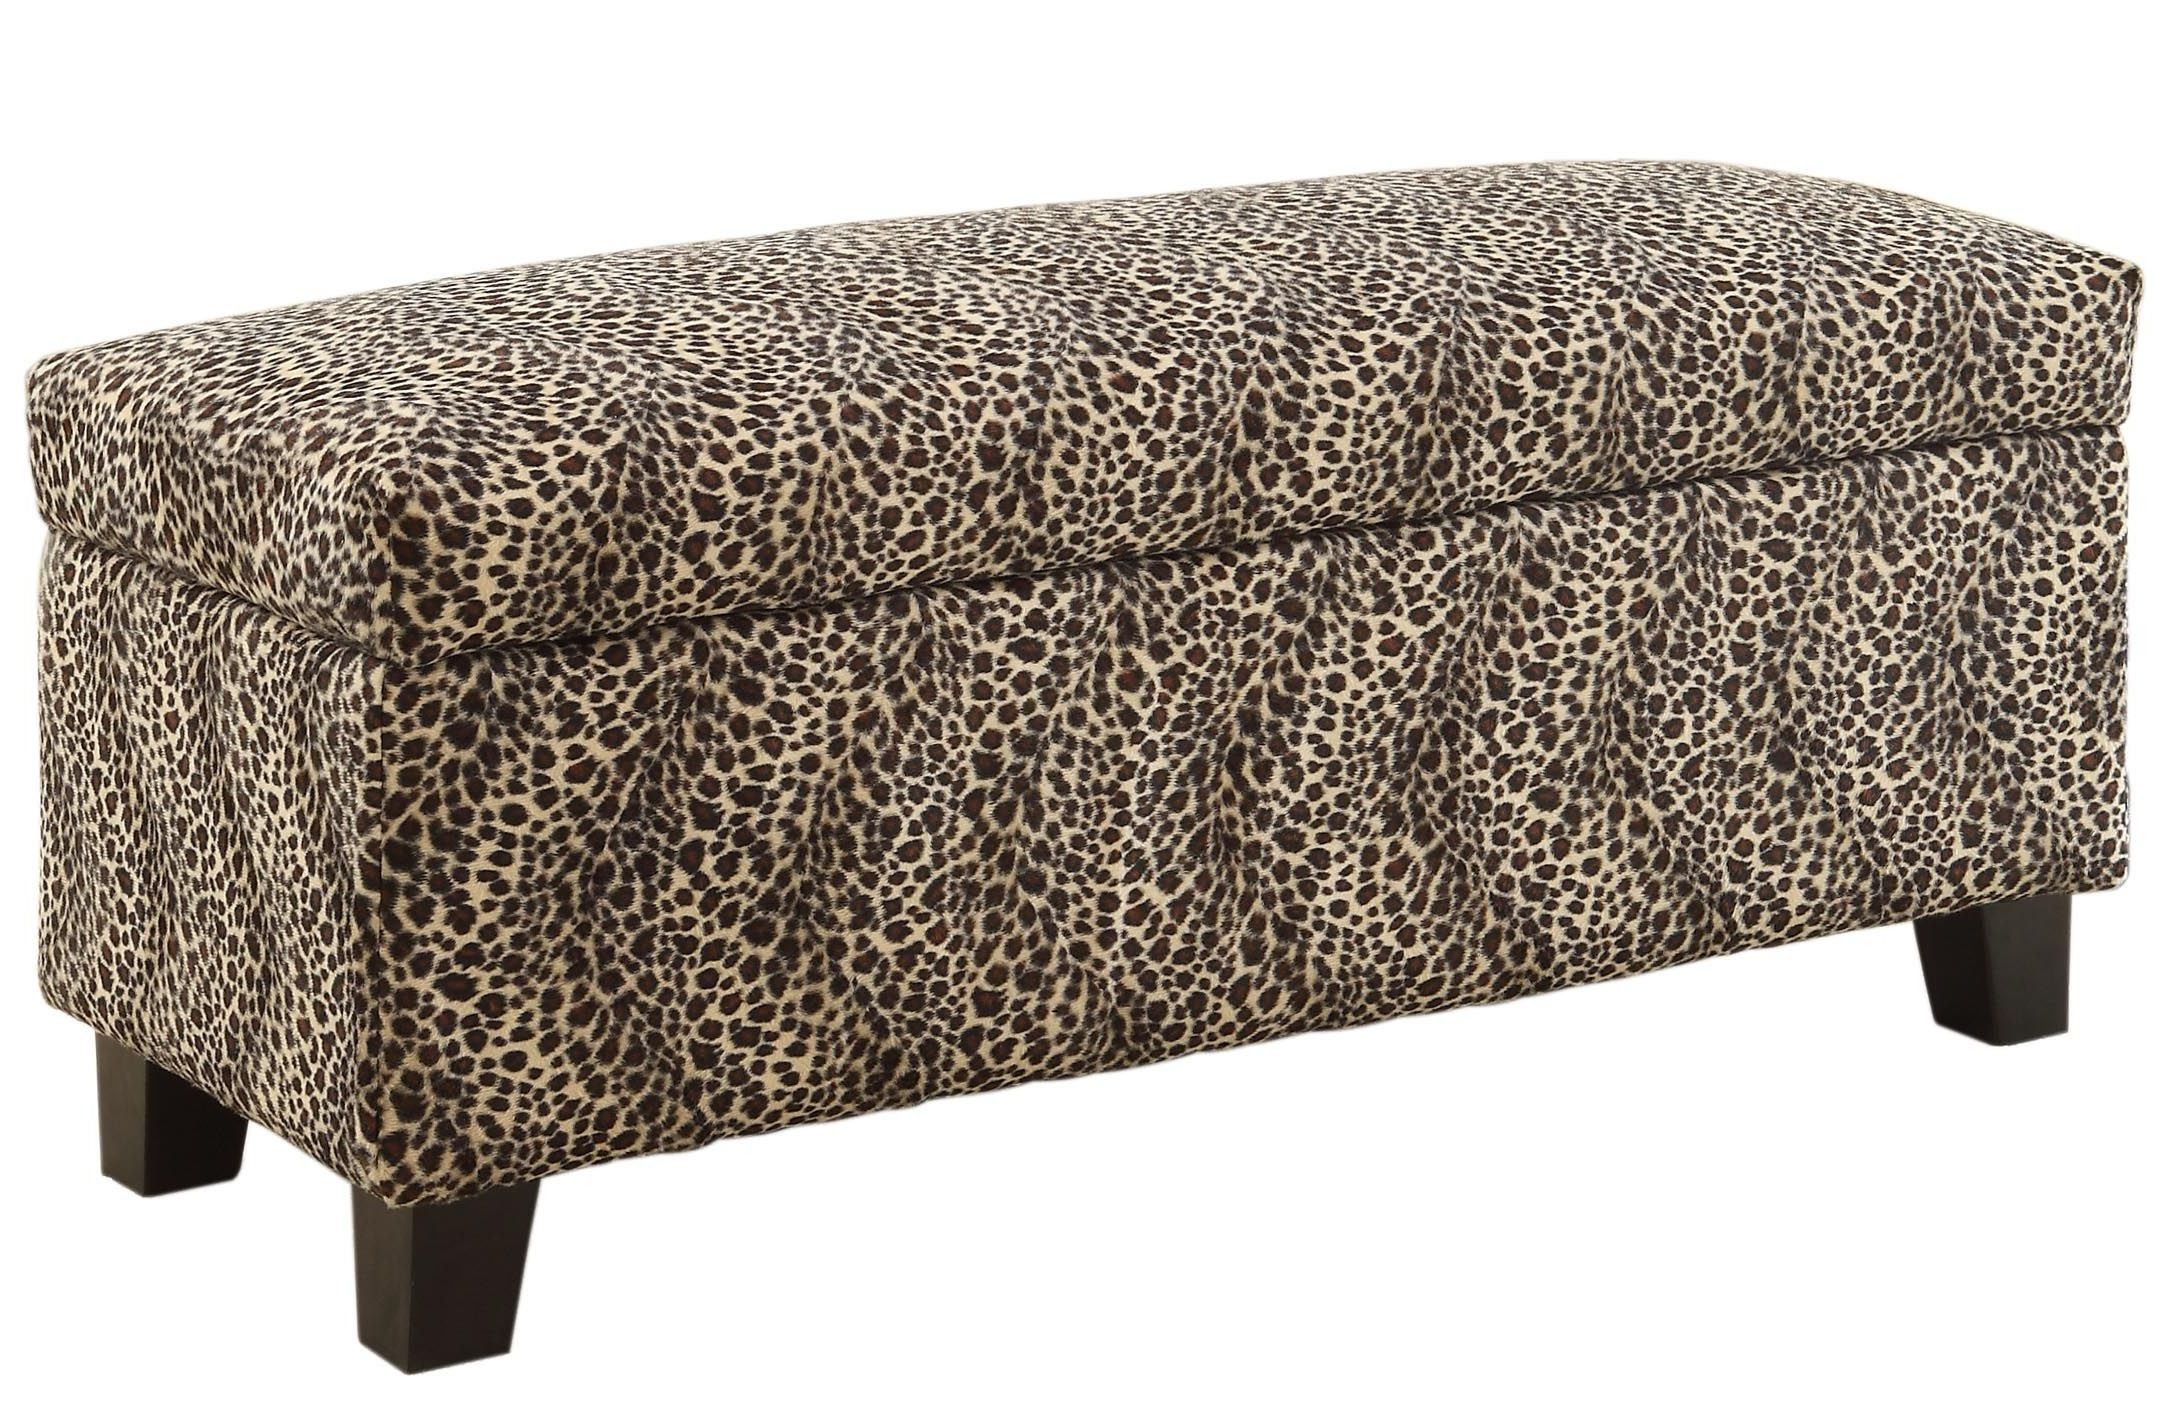 Clair Lift Top Leopard Storage Bench From Homelegance 471lp Coleman Furniture